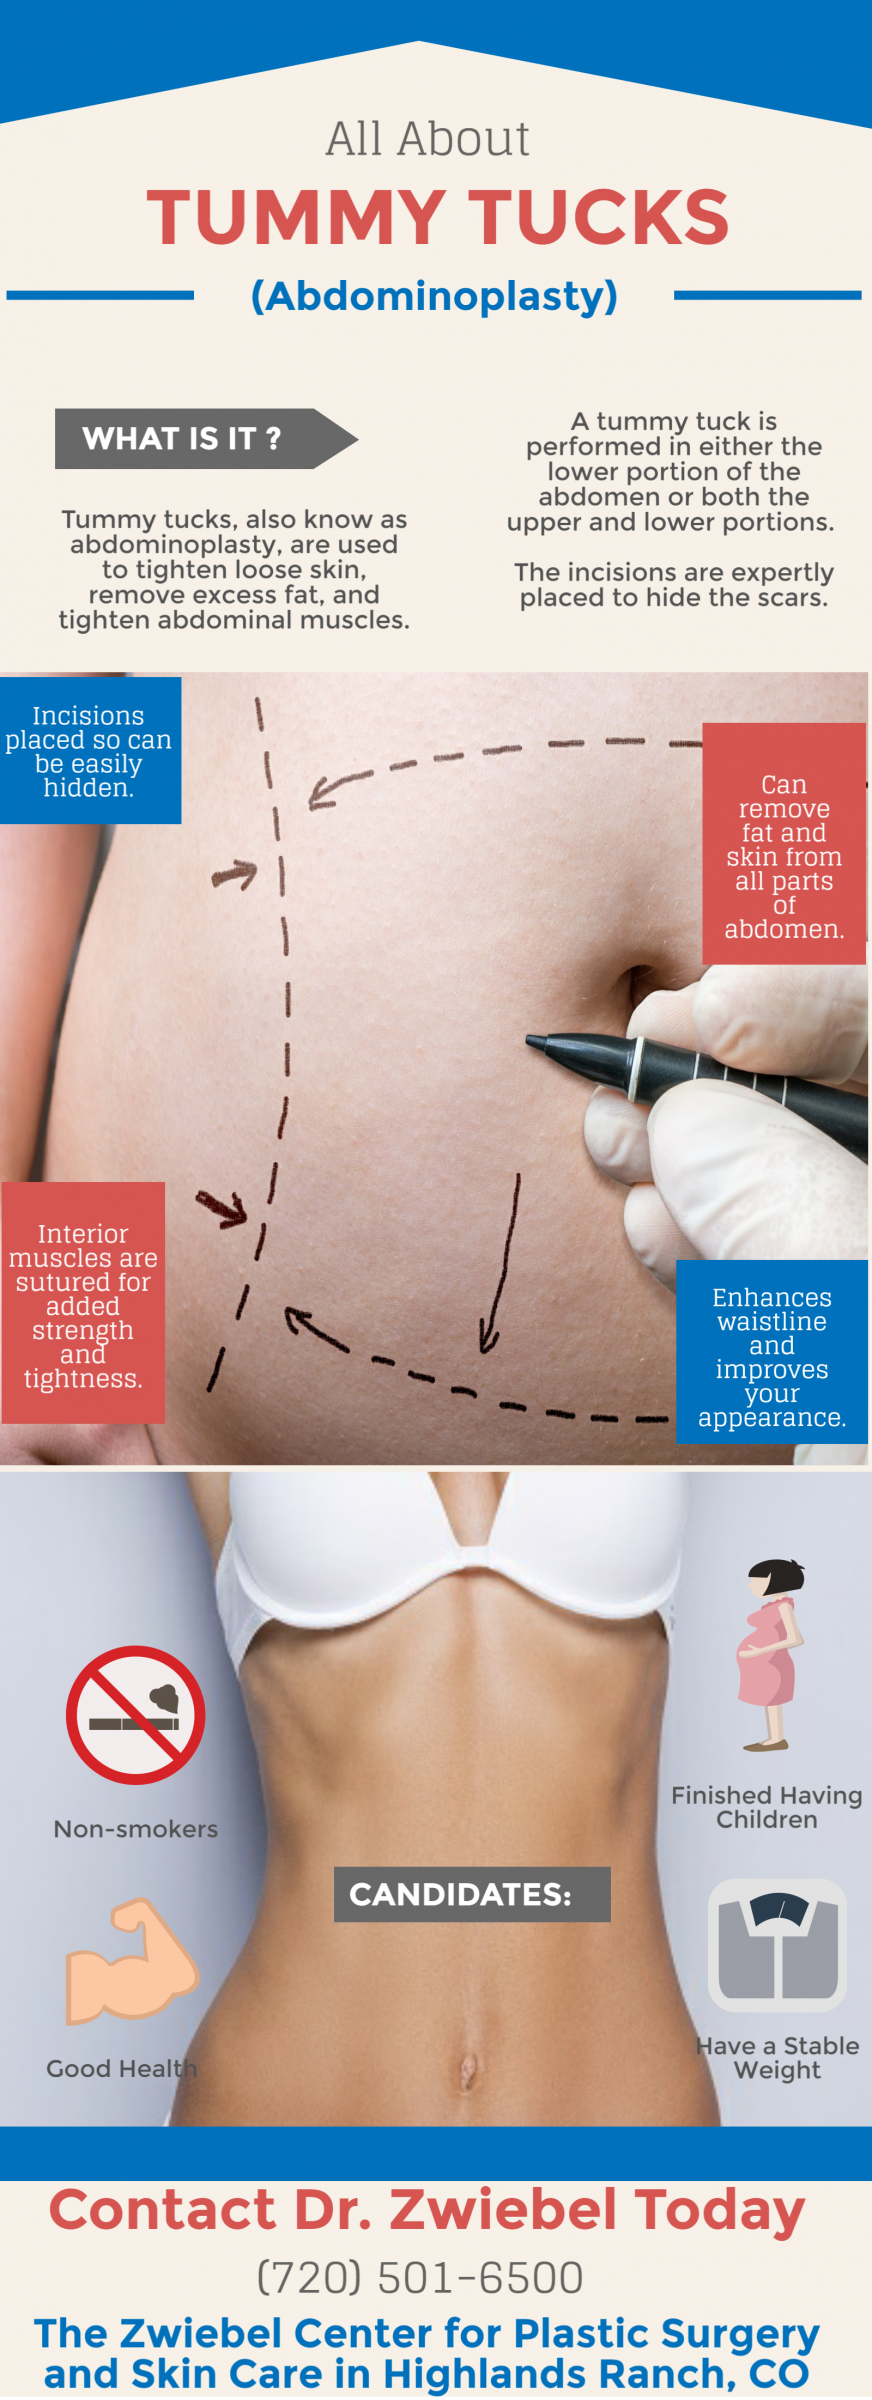 Tummy Tucks | Abdominoplasty | Plastic Surgery | Highlands Ranch, CO